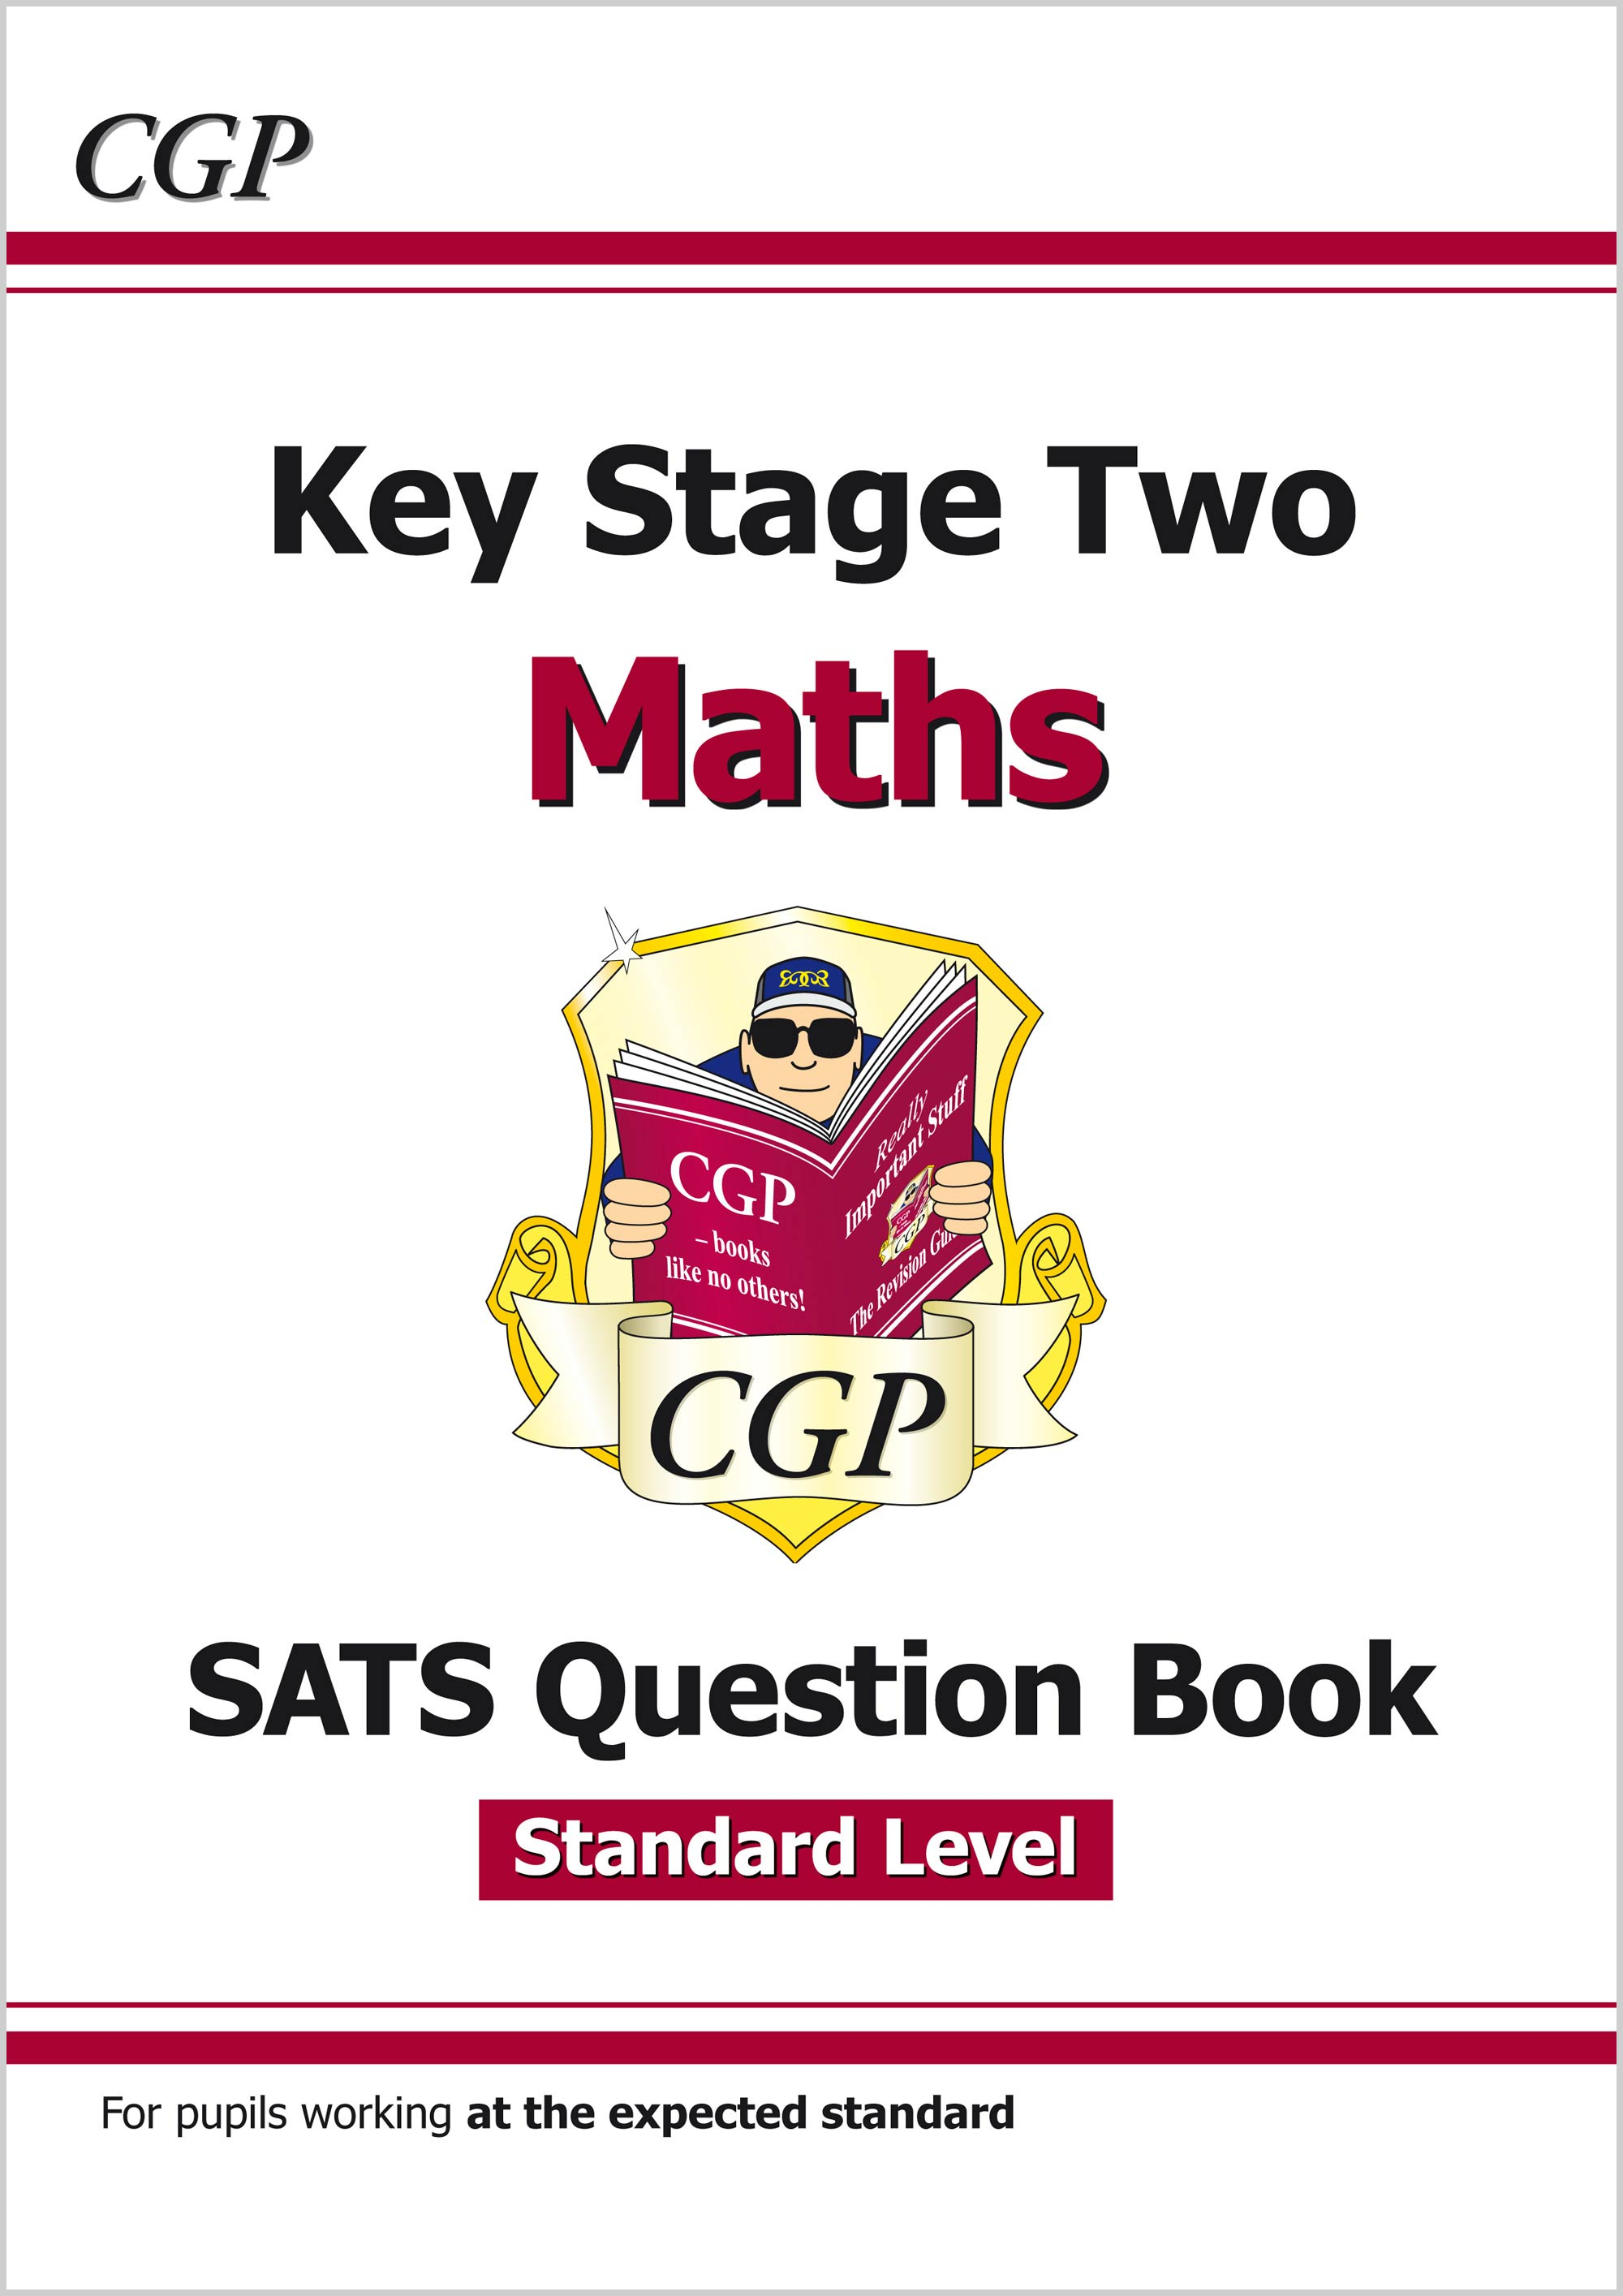 KS2 Maths Targeted SATS Question Book - Standard Level (for the 2020 tests)